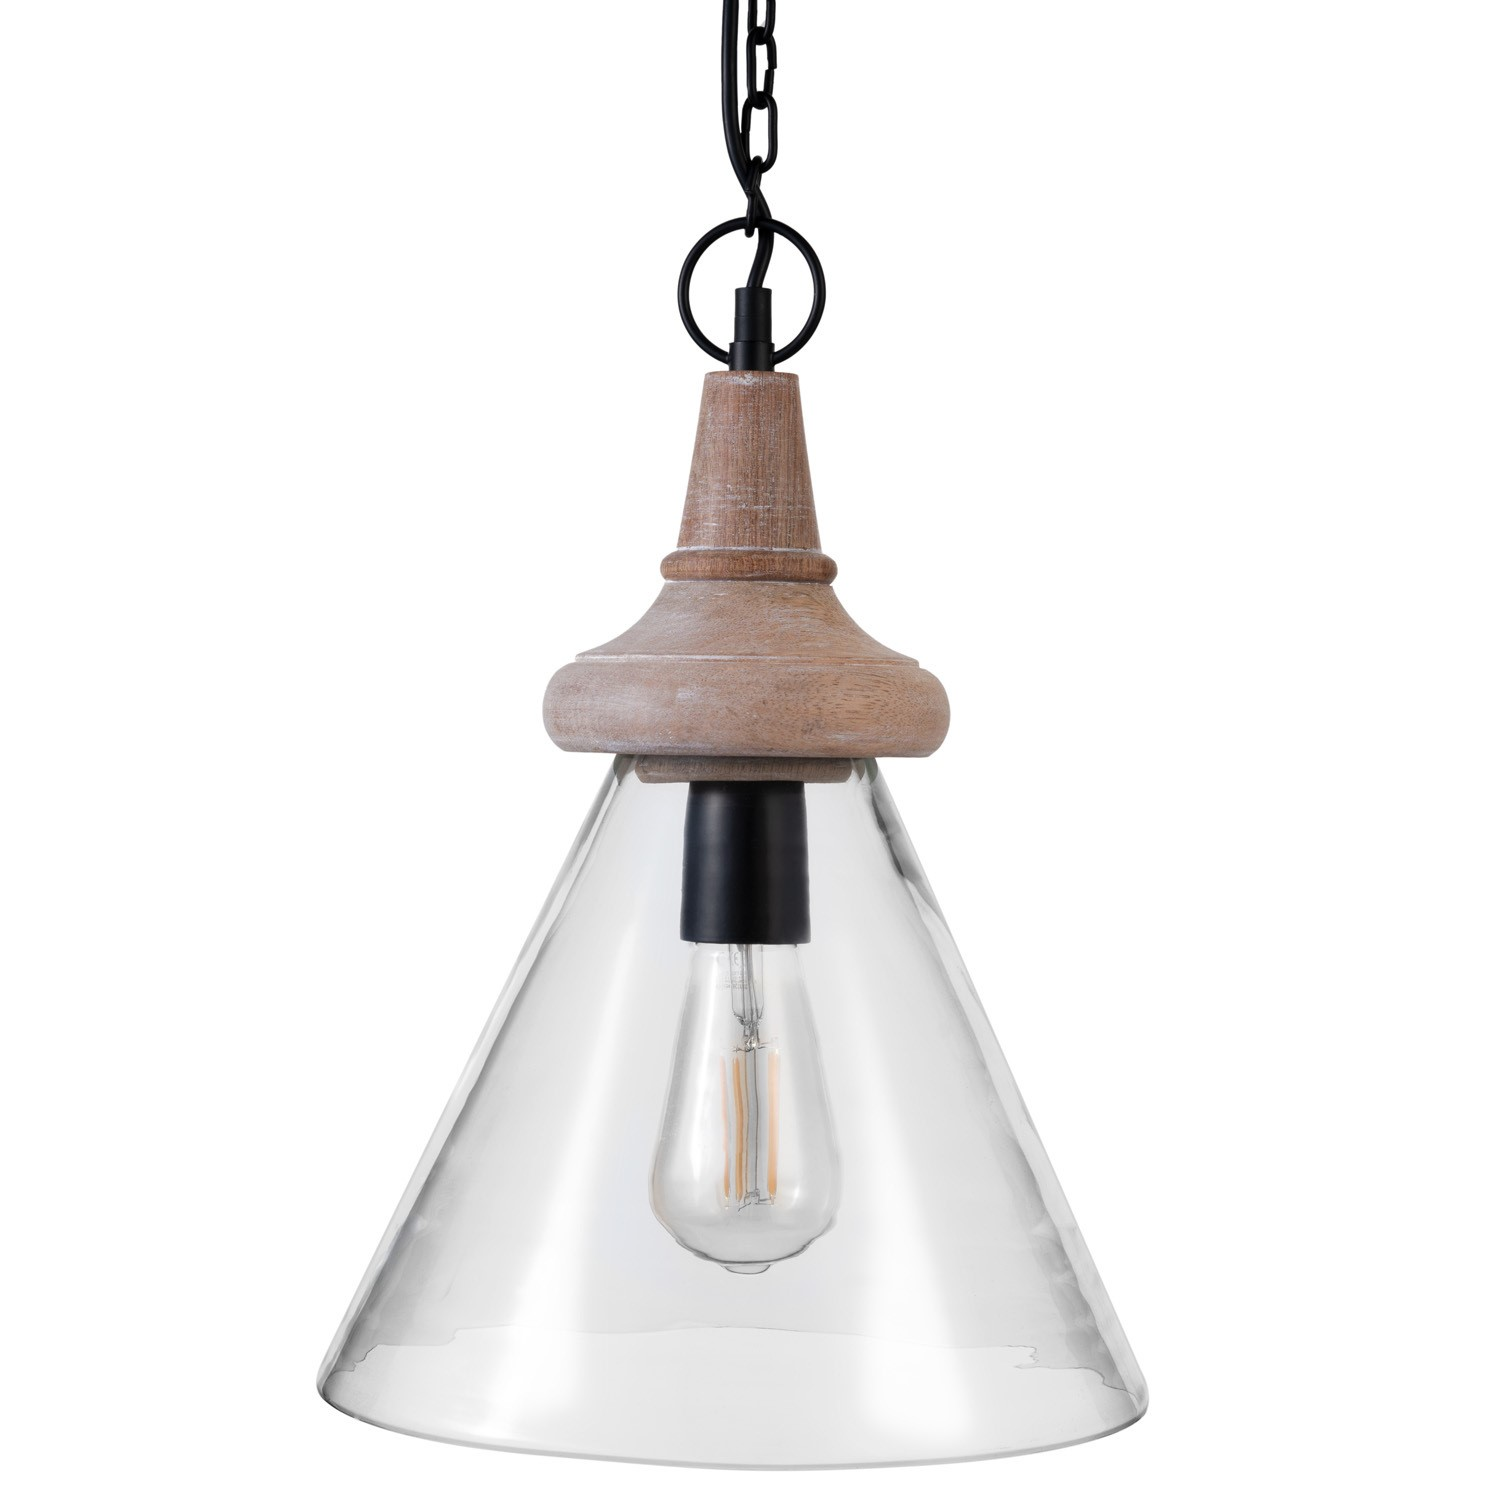 Dome Glass Pendant Light with Wooden Finish - Scandi - Durha